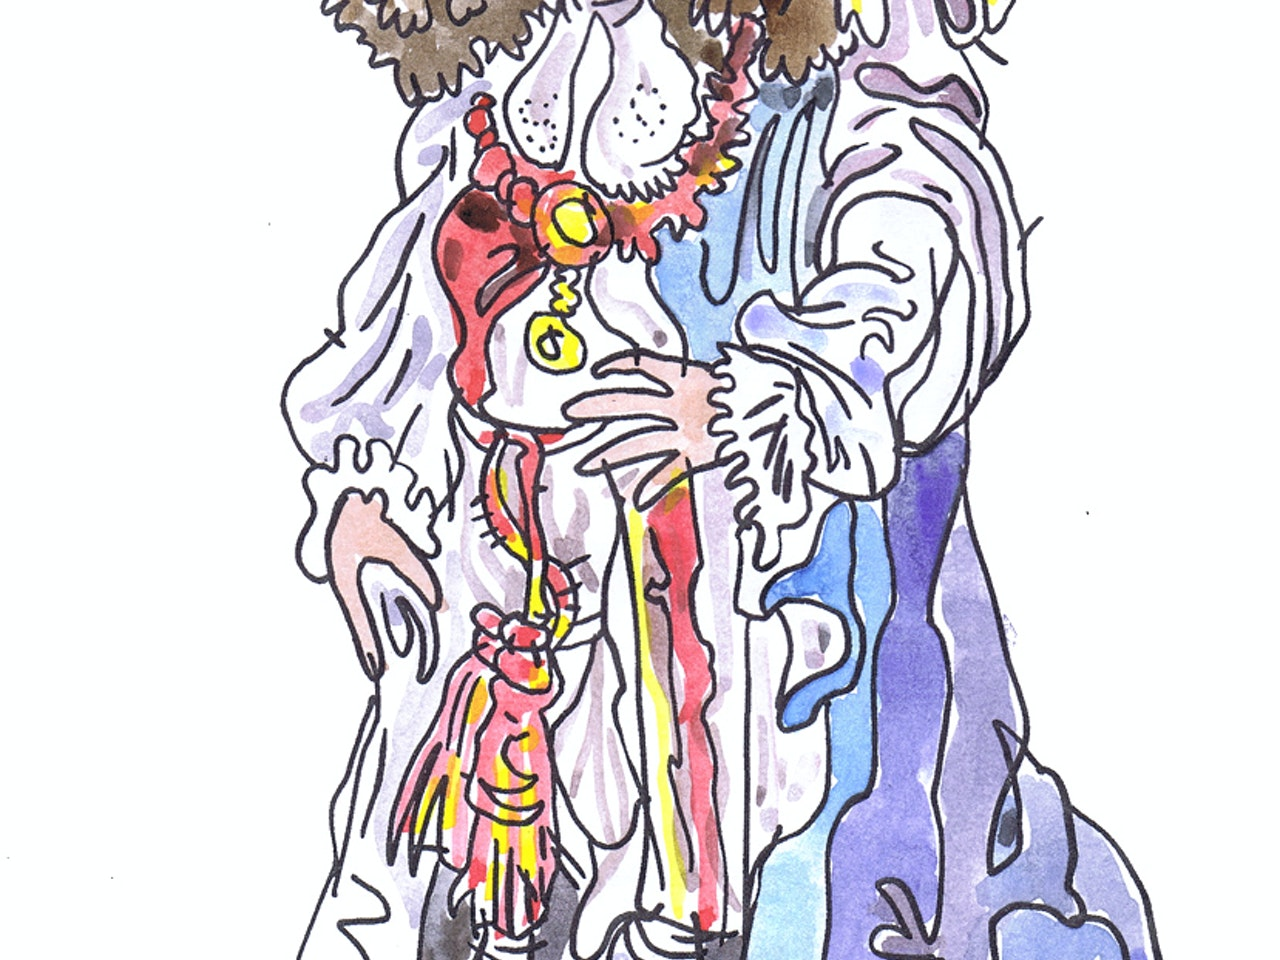 watercolour painting pen and ink coloured pencil Book cover childrens illustration animation funny  humorous comical colourful graphic novel comic strip cartoon comic book educational publishing historical history  royal regal court london monarch medieval jewels regency